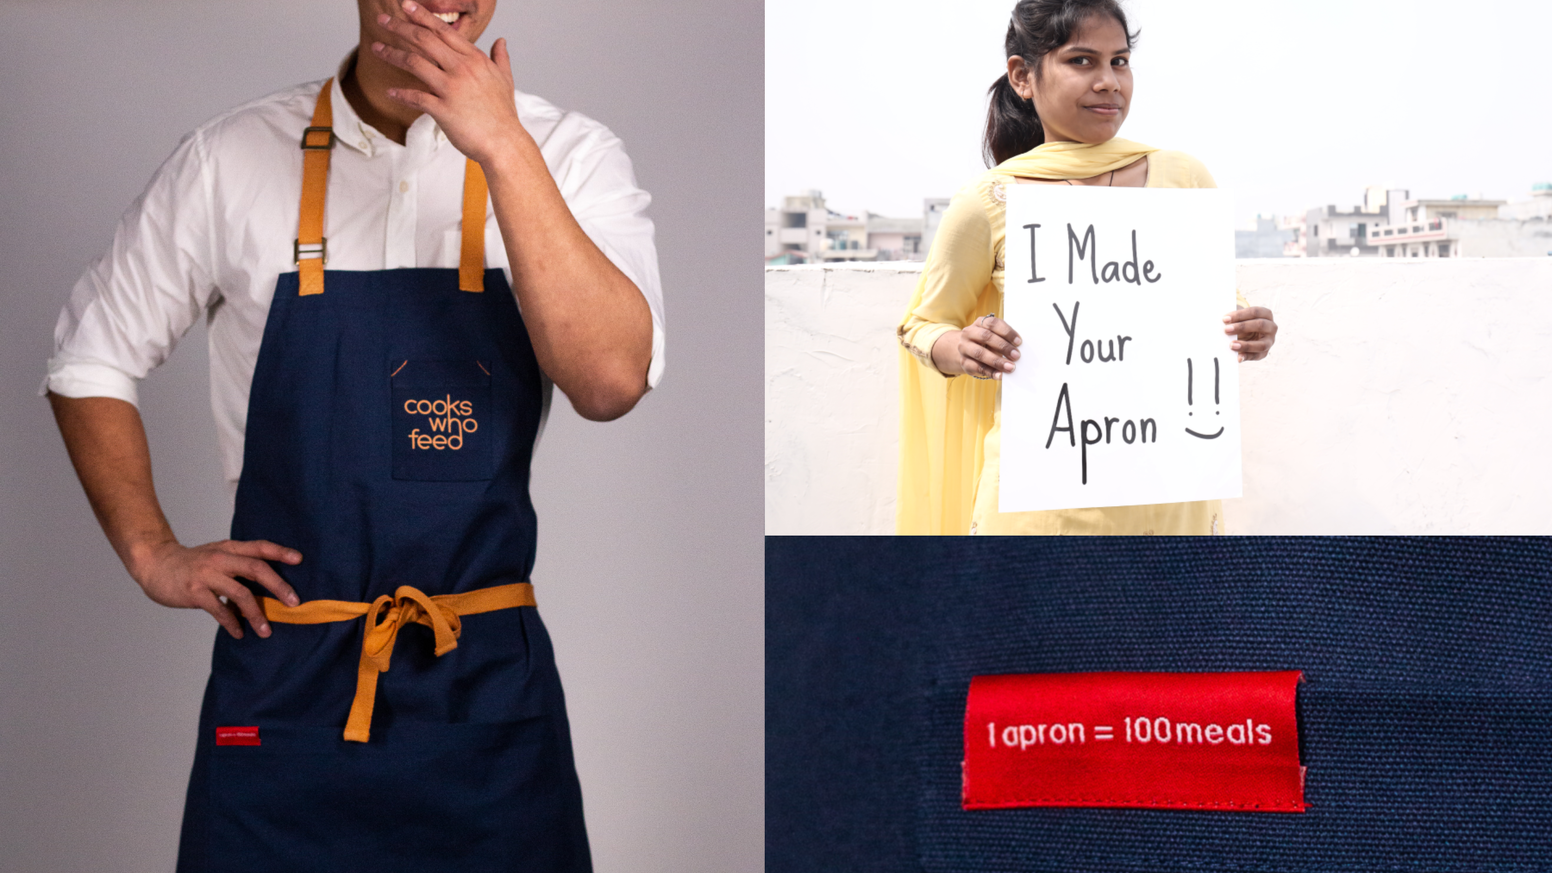 We produce handcrafted aprons to feed those in need and prevent food from going to waste. We work with charities that share our vision.